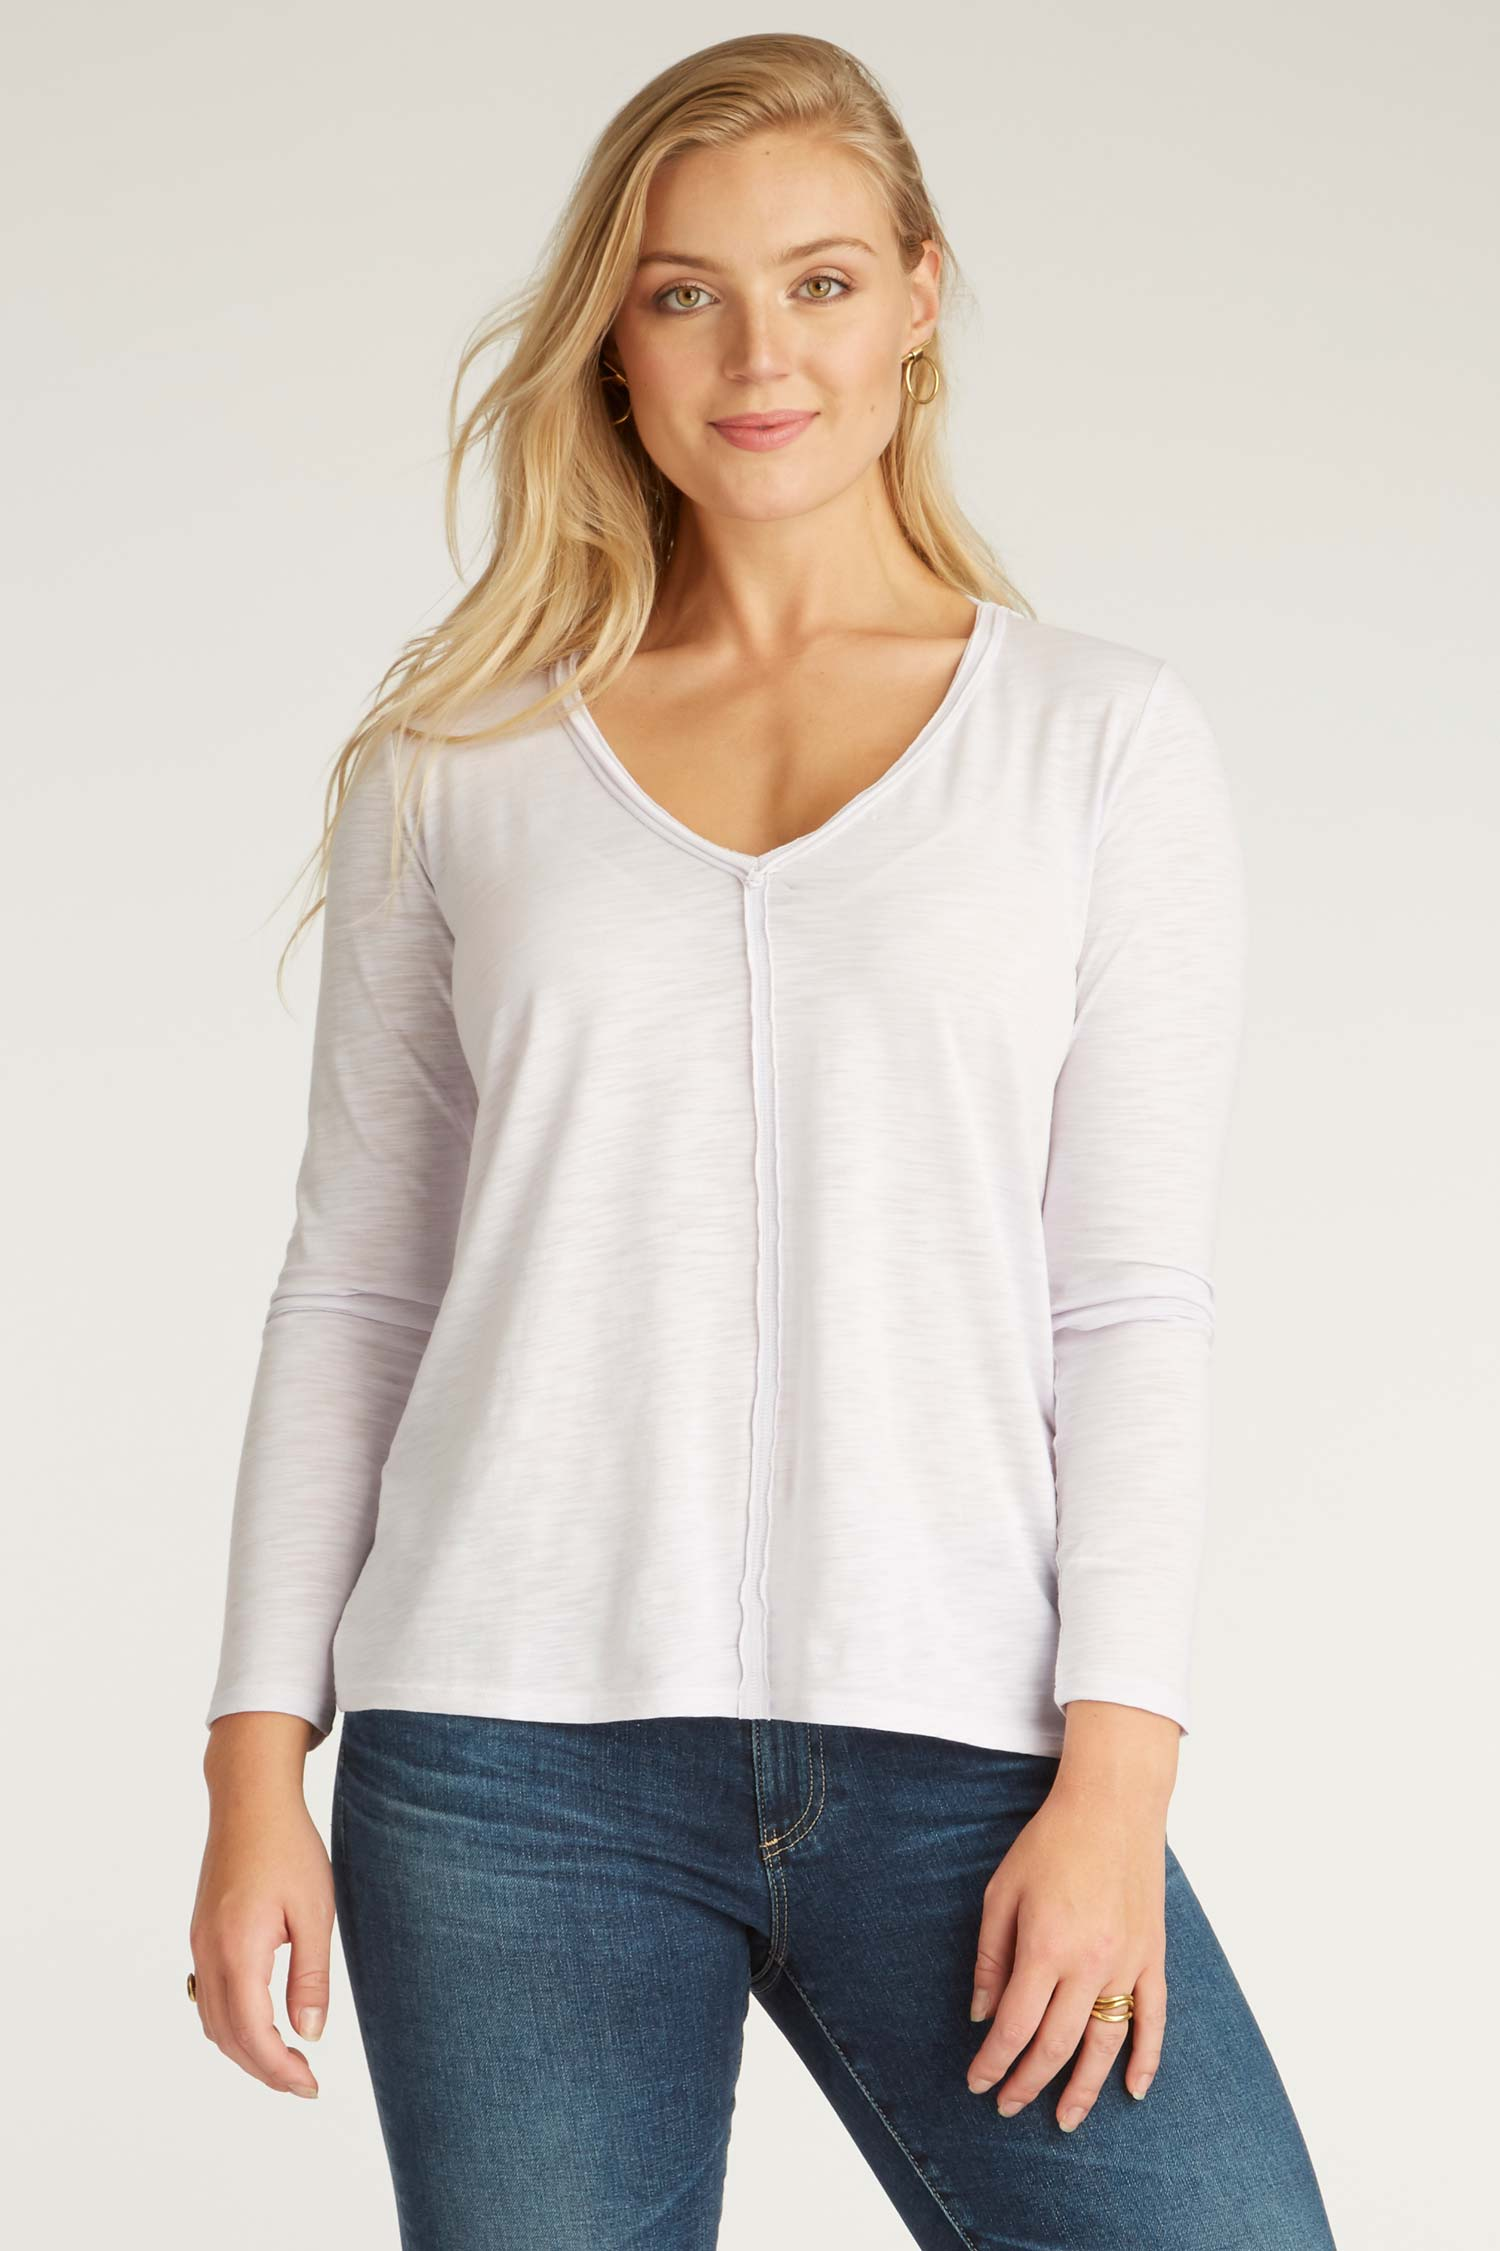 Womens Organic Cotton Shirt | Reversible V Neck Top